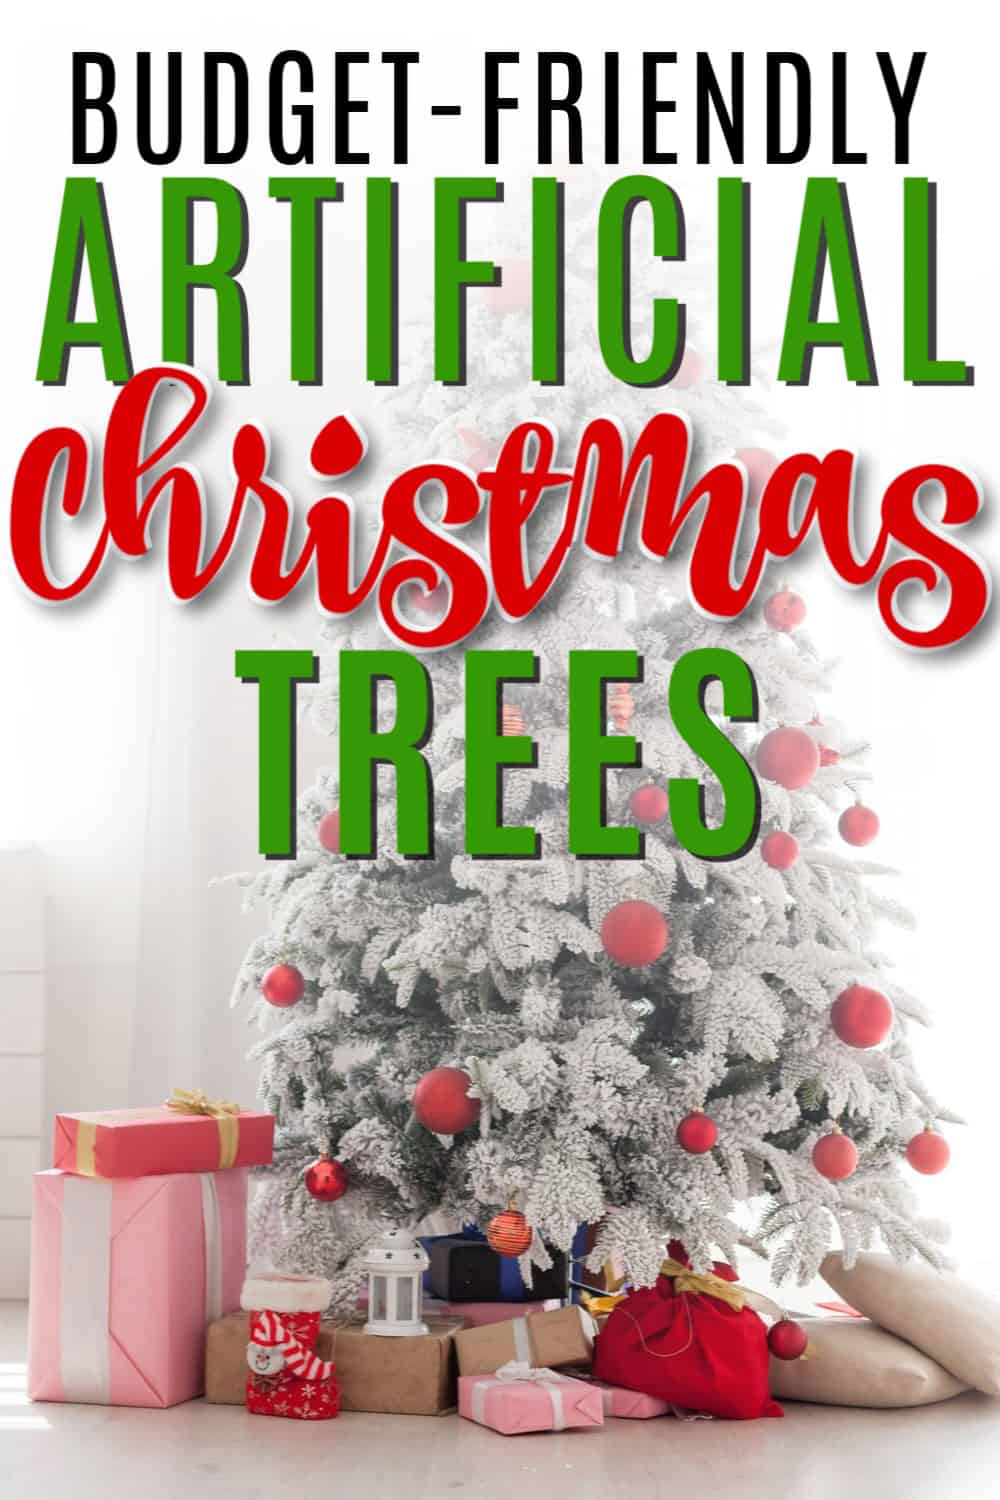 Christmas tree scene with Budget Friendly Artificial Christmas Trees text overlay